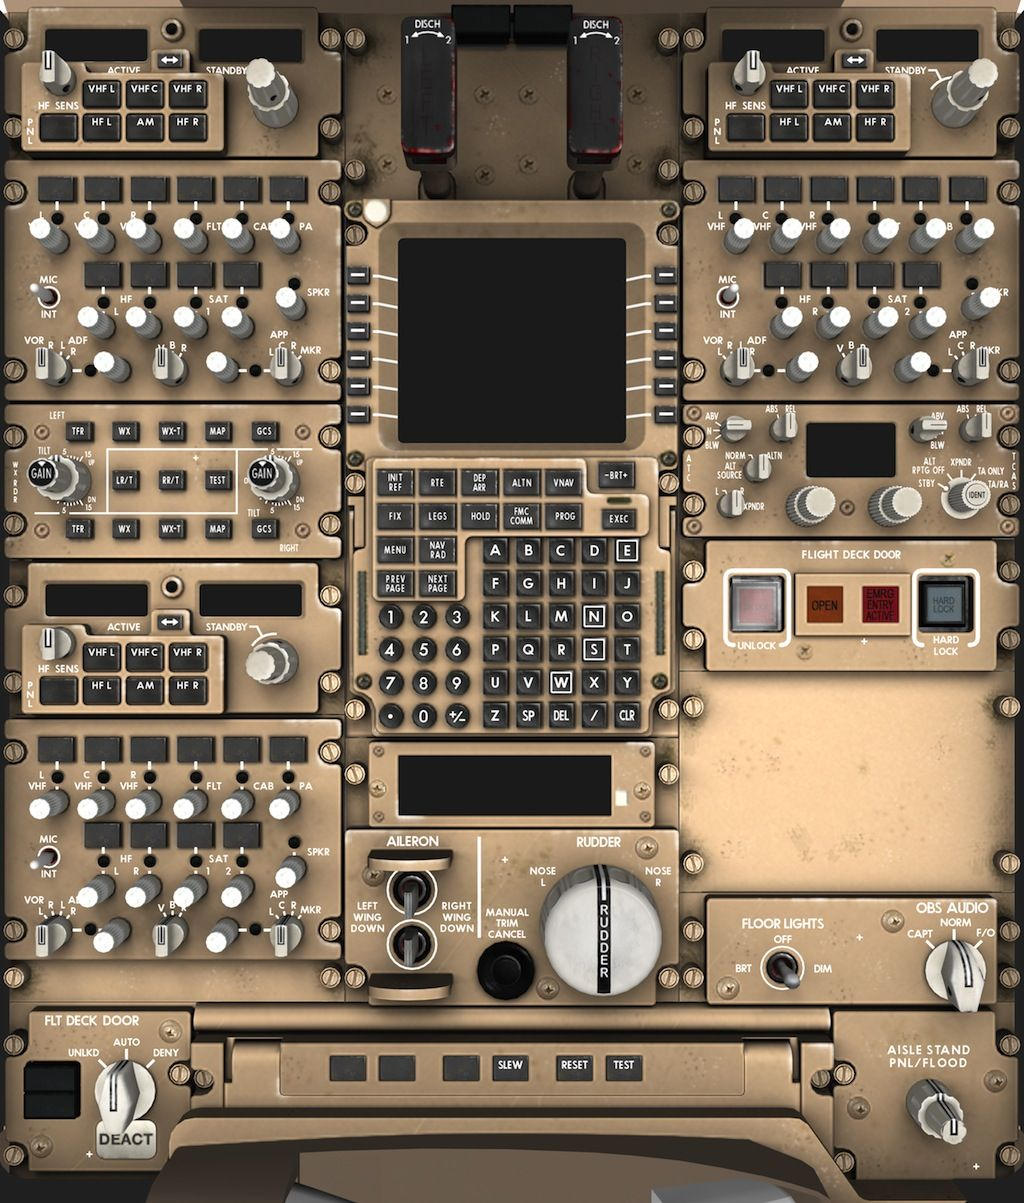 space shuttle cockpit layout - Google Search | Space ...